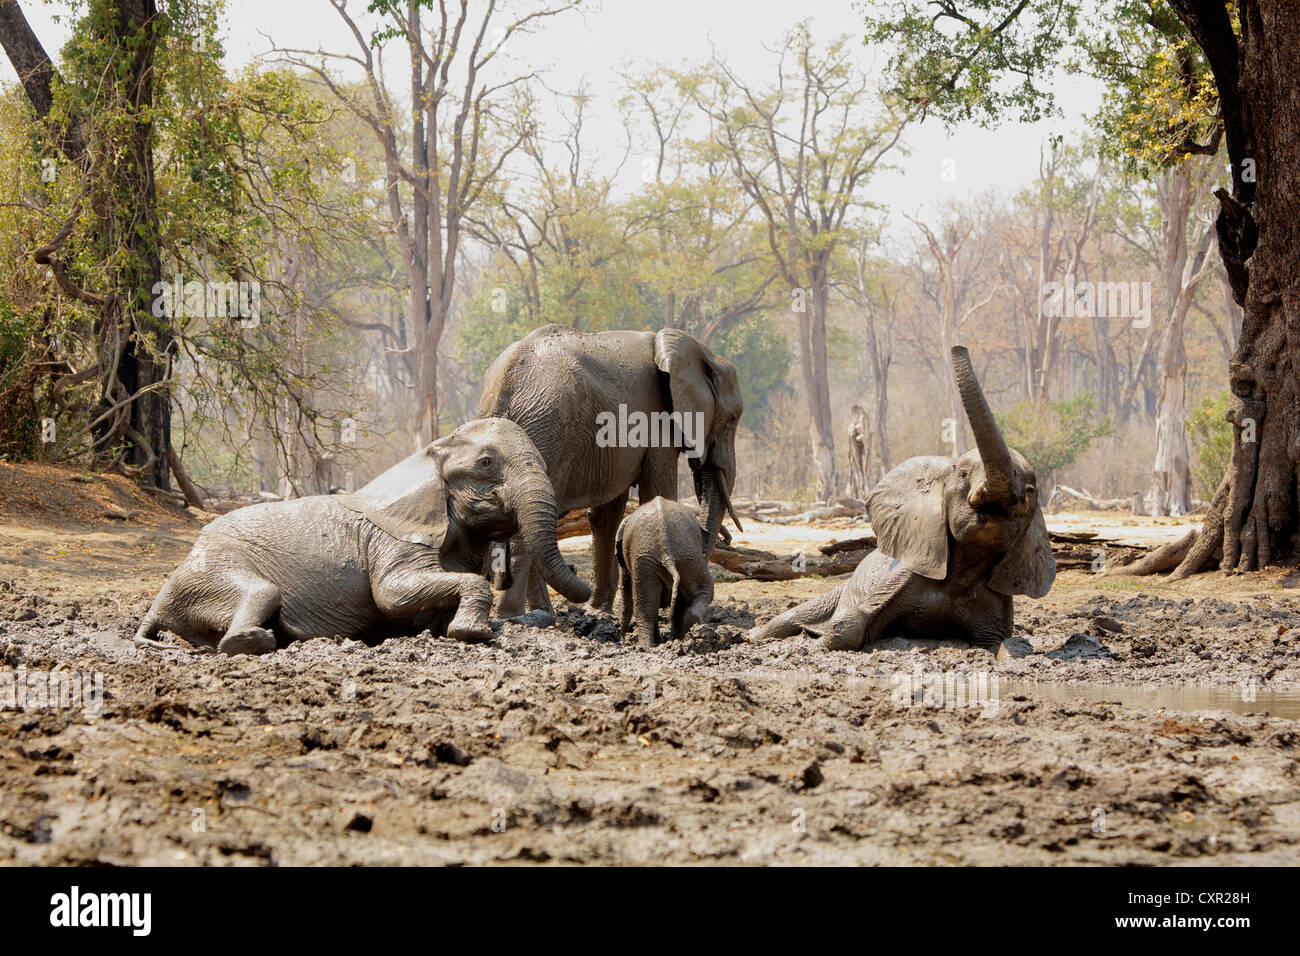 Les éléphants se baigner dans la boue, Mana Pools, Zimbabwe Photo Stock